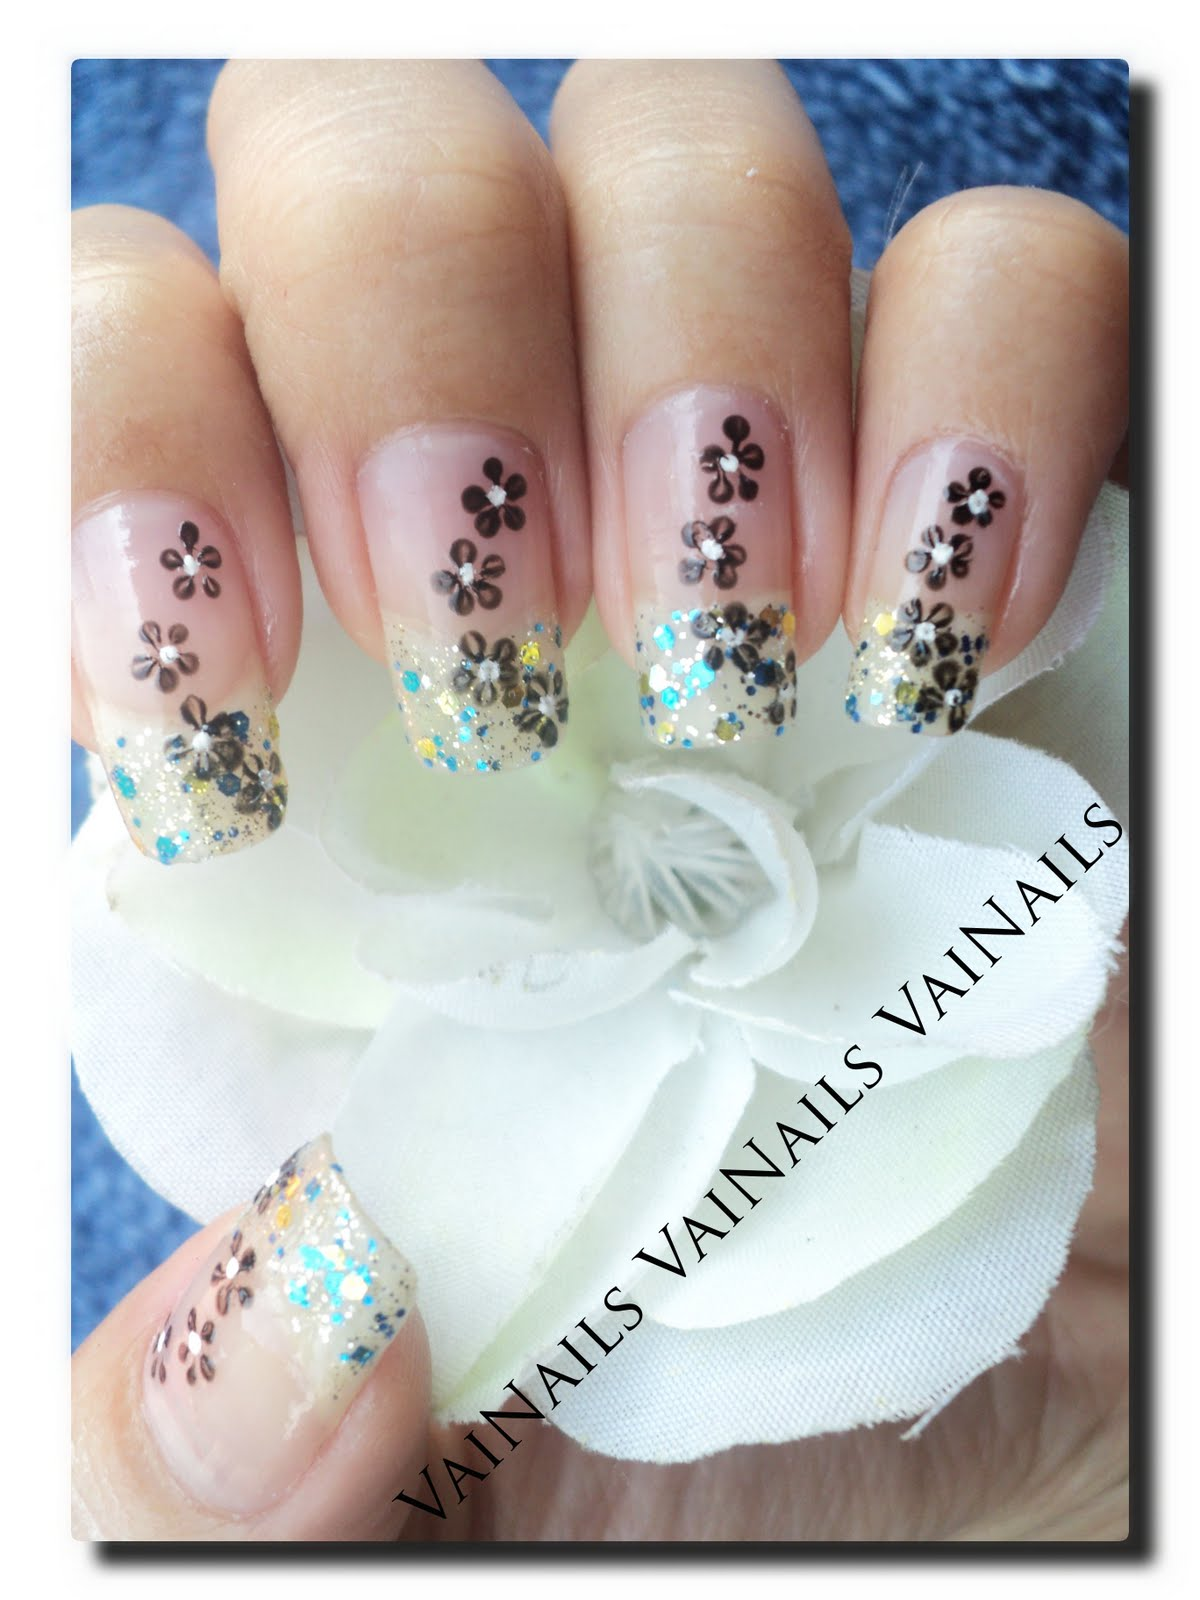 Fancy Nail Designs Tumblr: Epitome Of Color And Style: Fancy Blue Glittered Nail Art